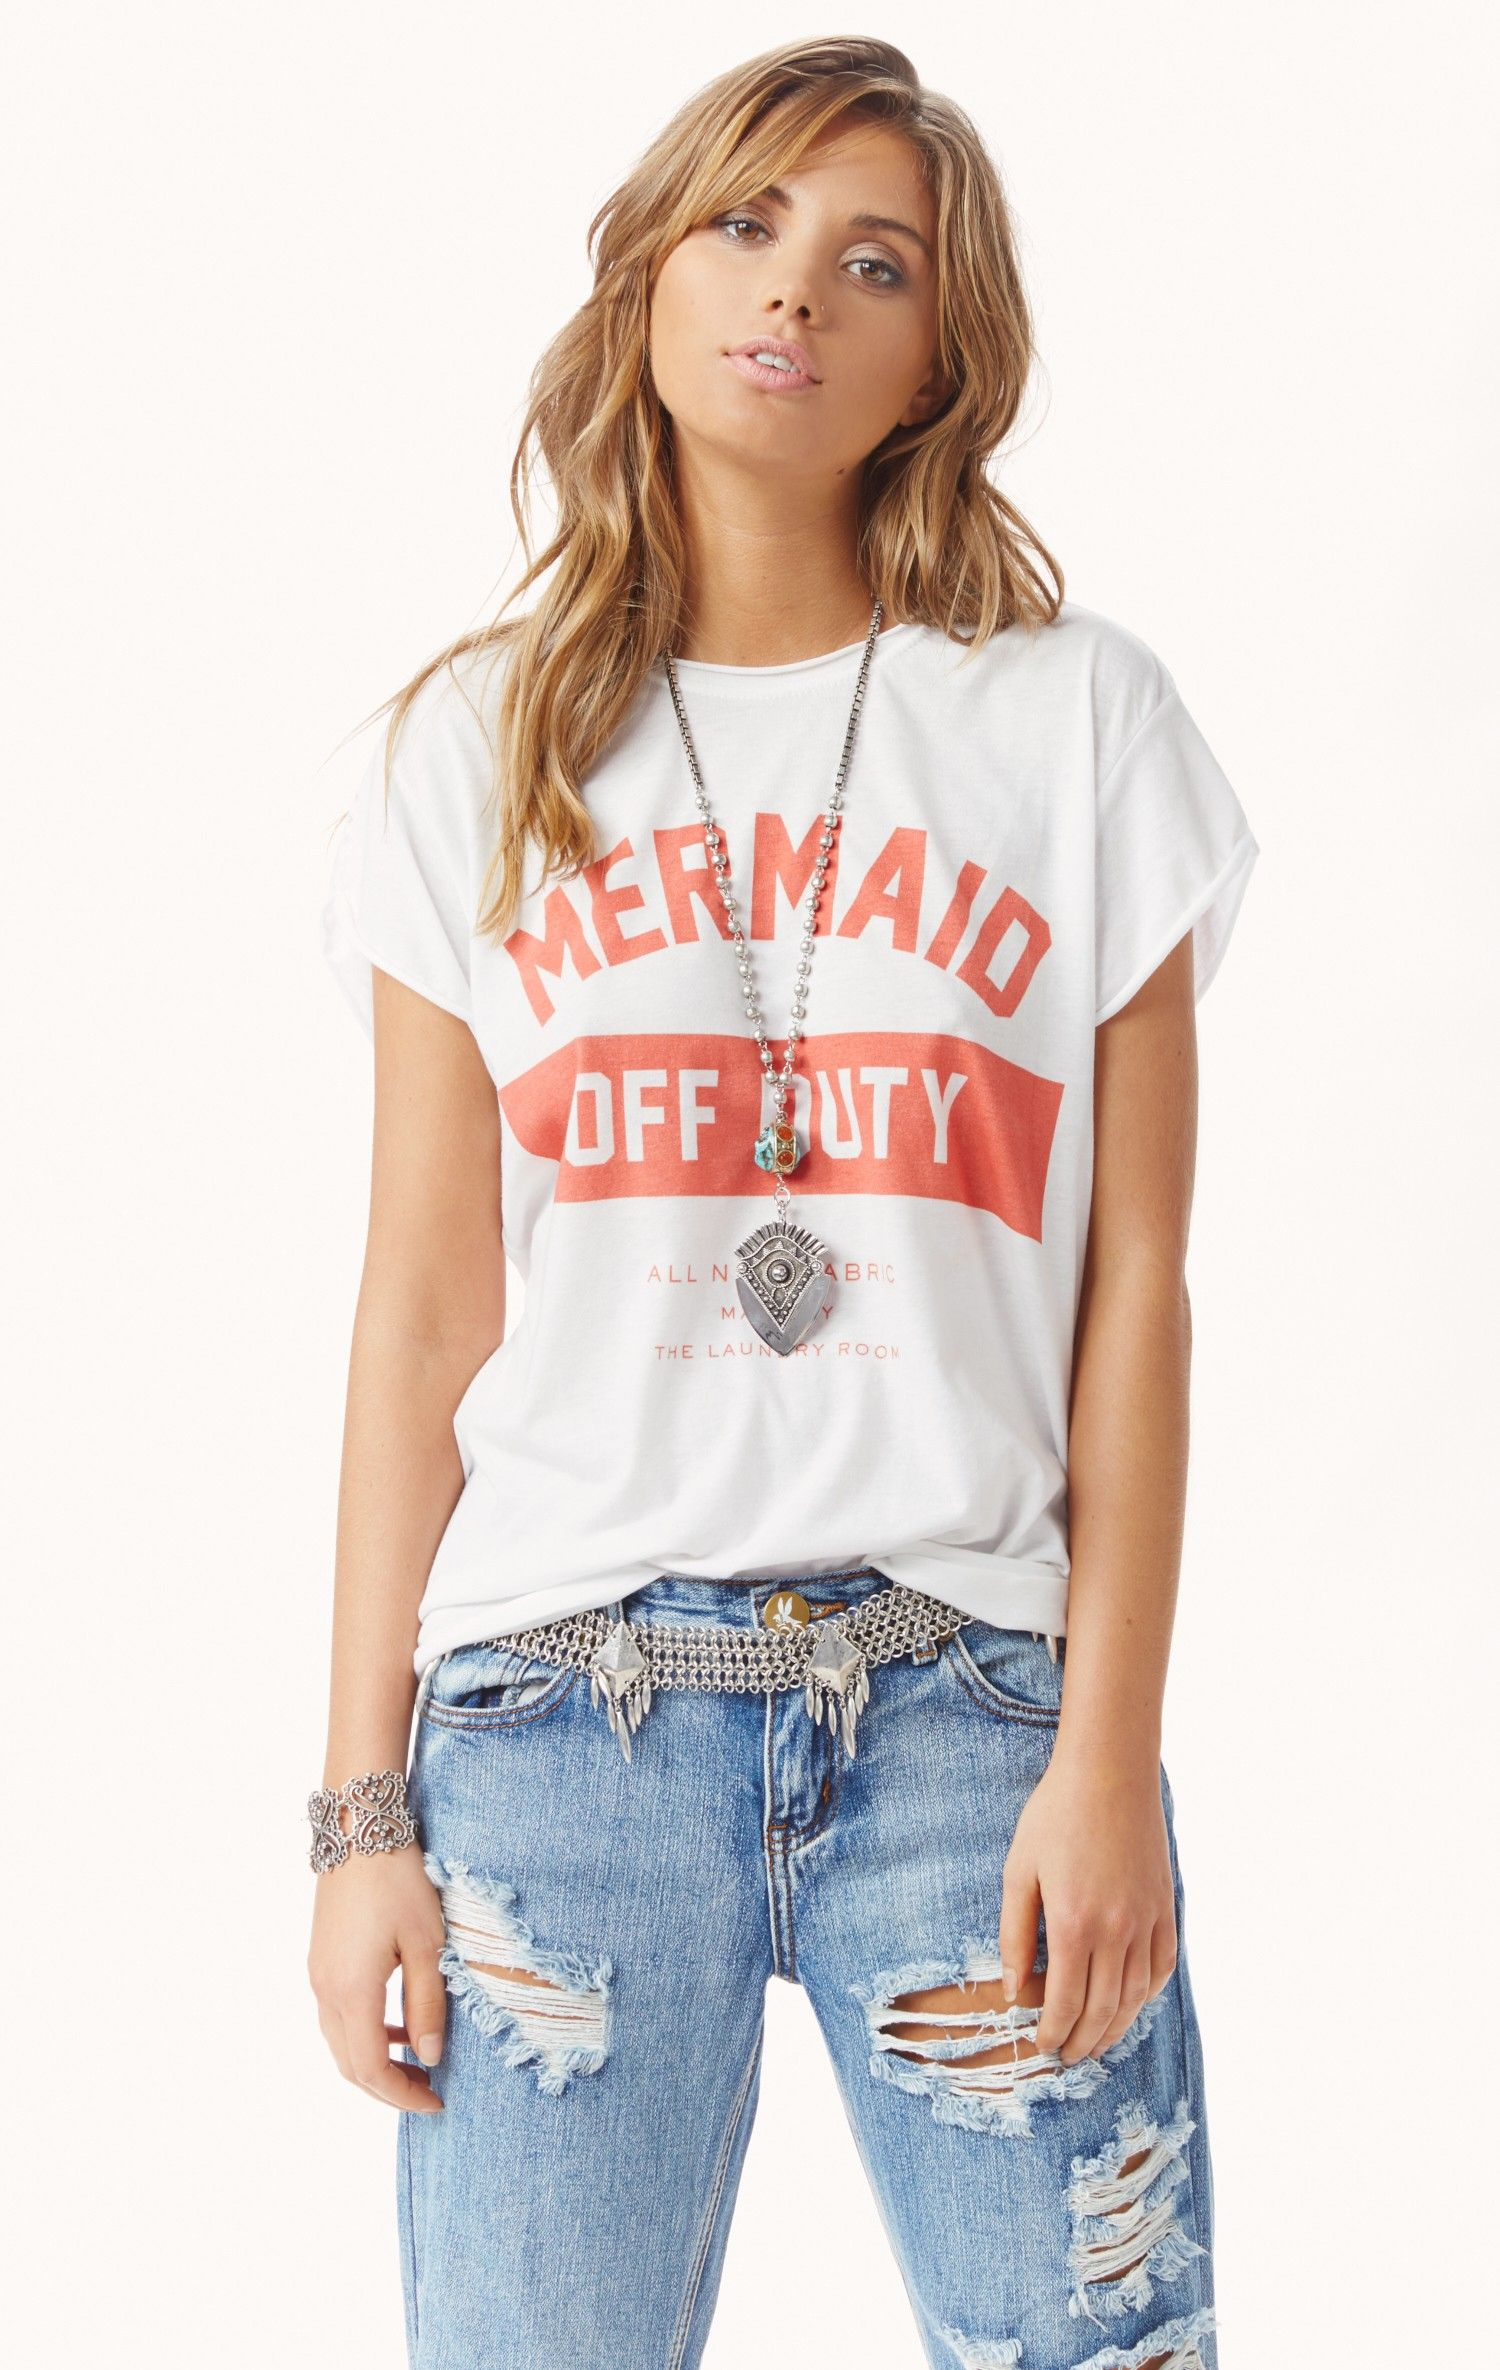 a1fec3a88857c mermaid off duty tee by THE LAUNDRY ROOM #planetblue | NEW ARRIVALS ...